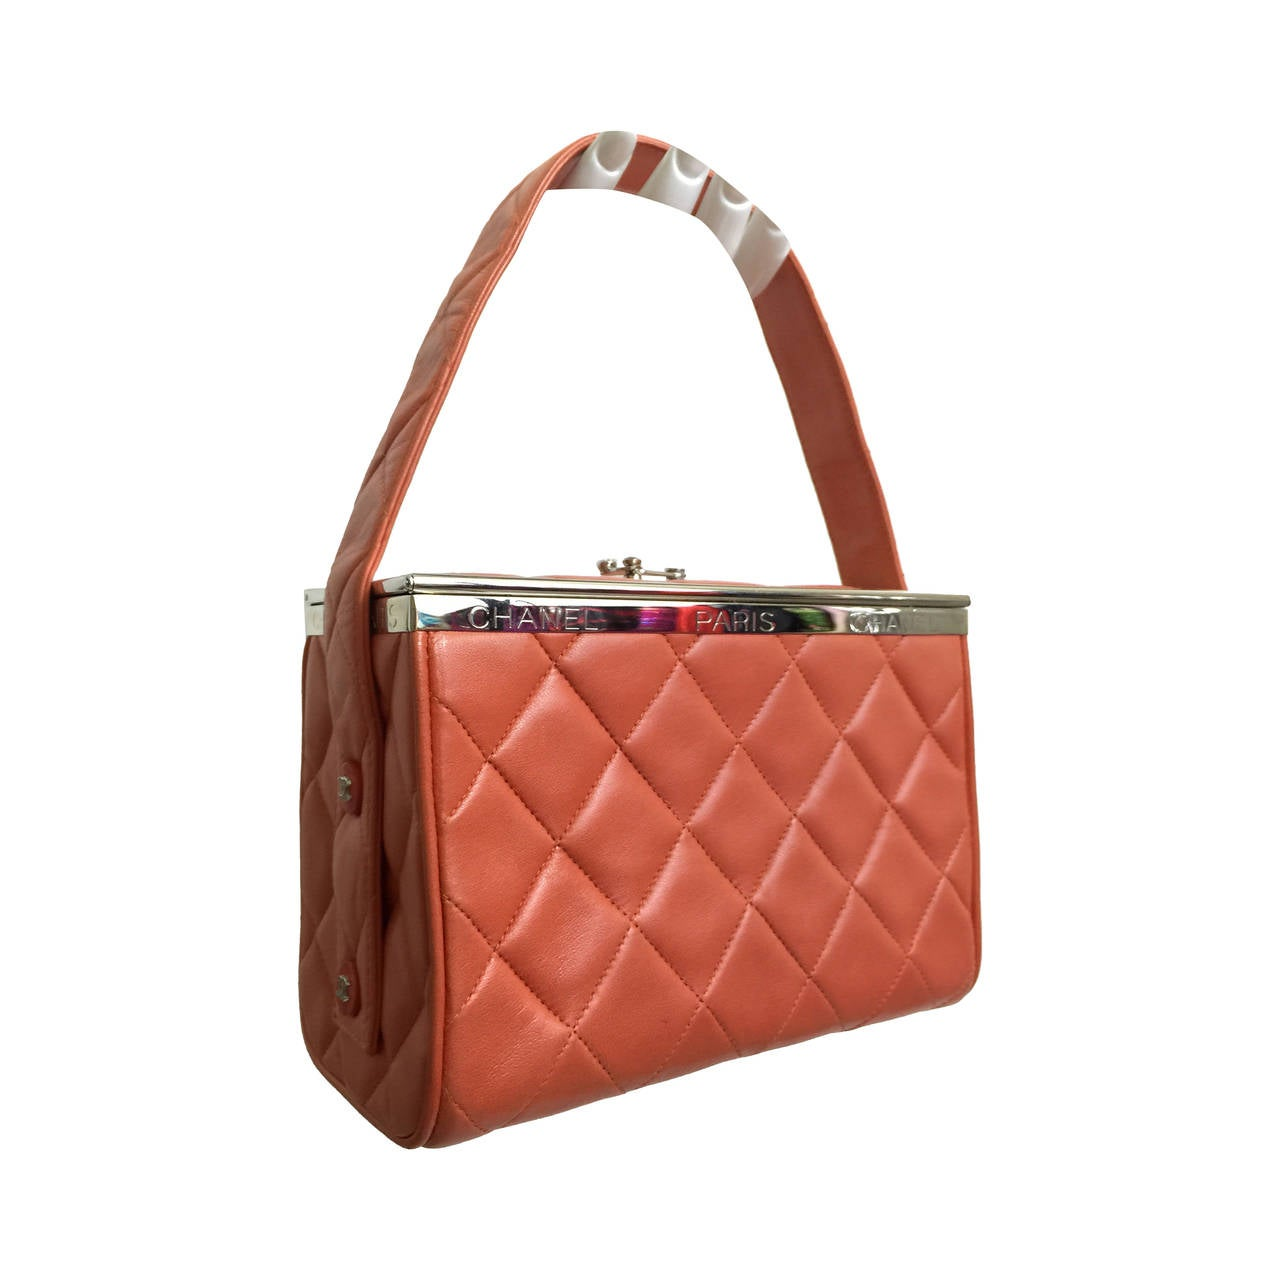 Chanel Vintage Quilted Box Bag